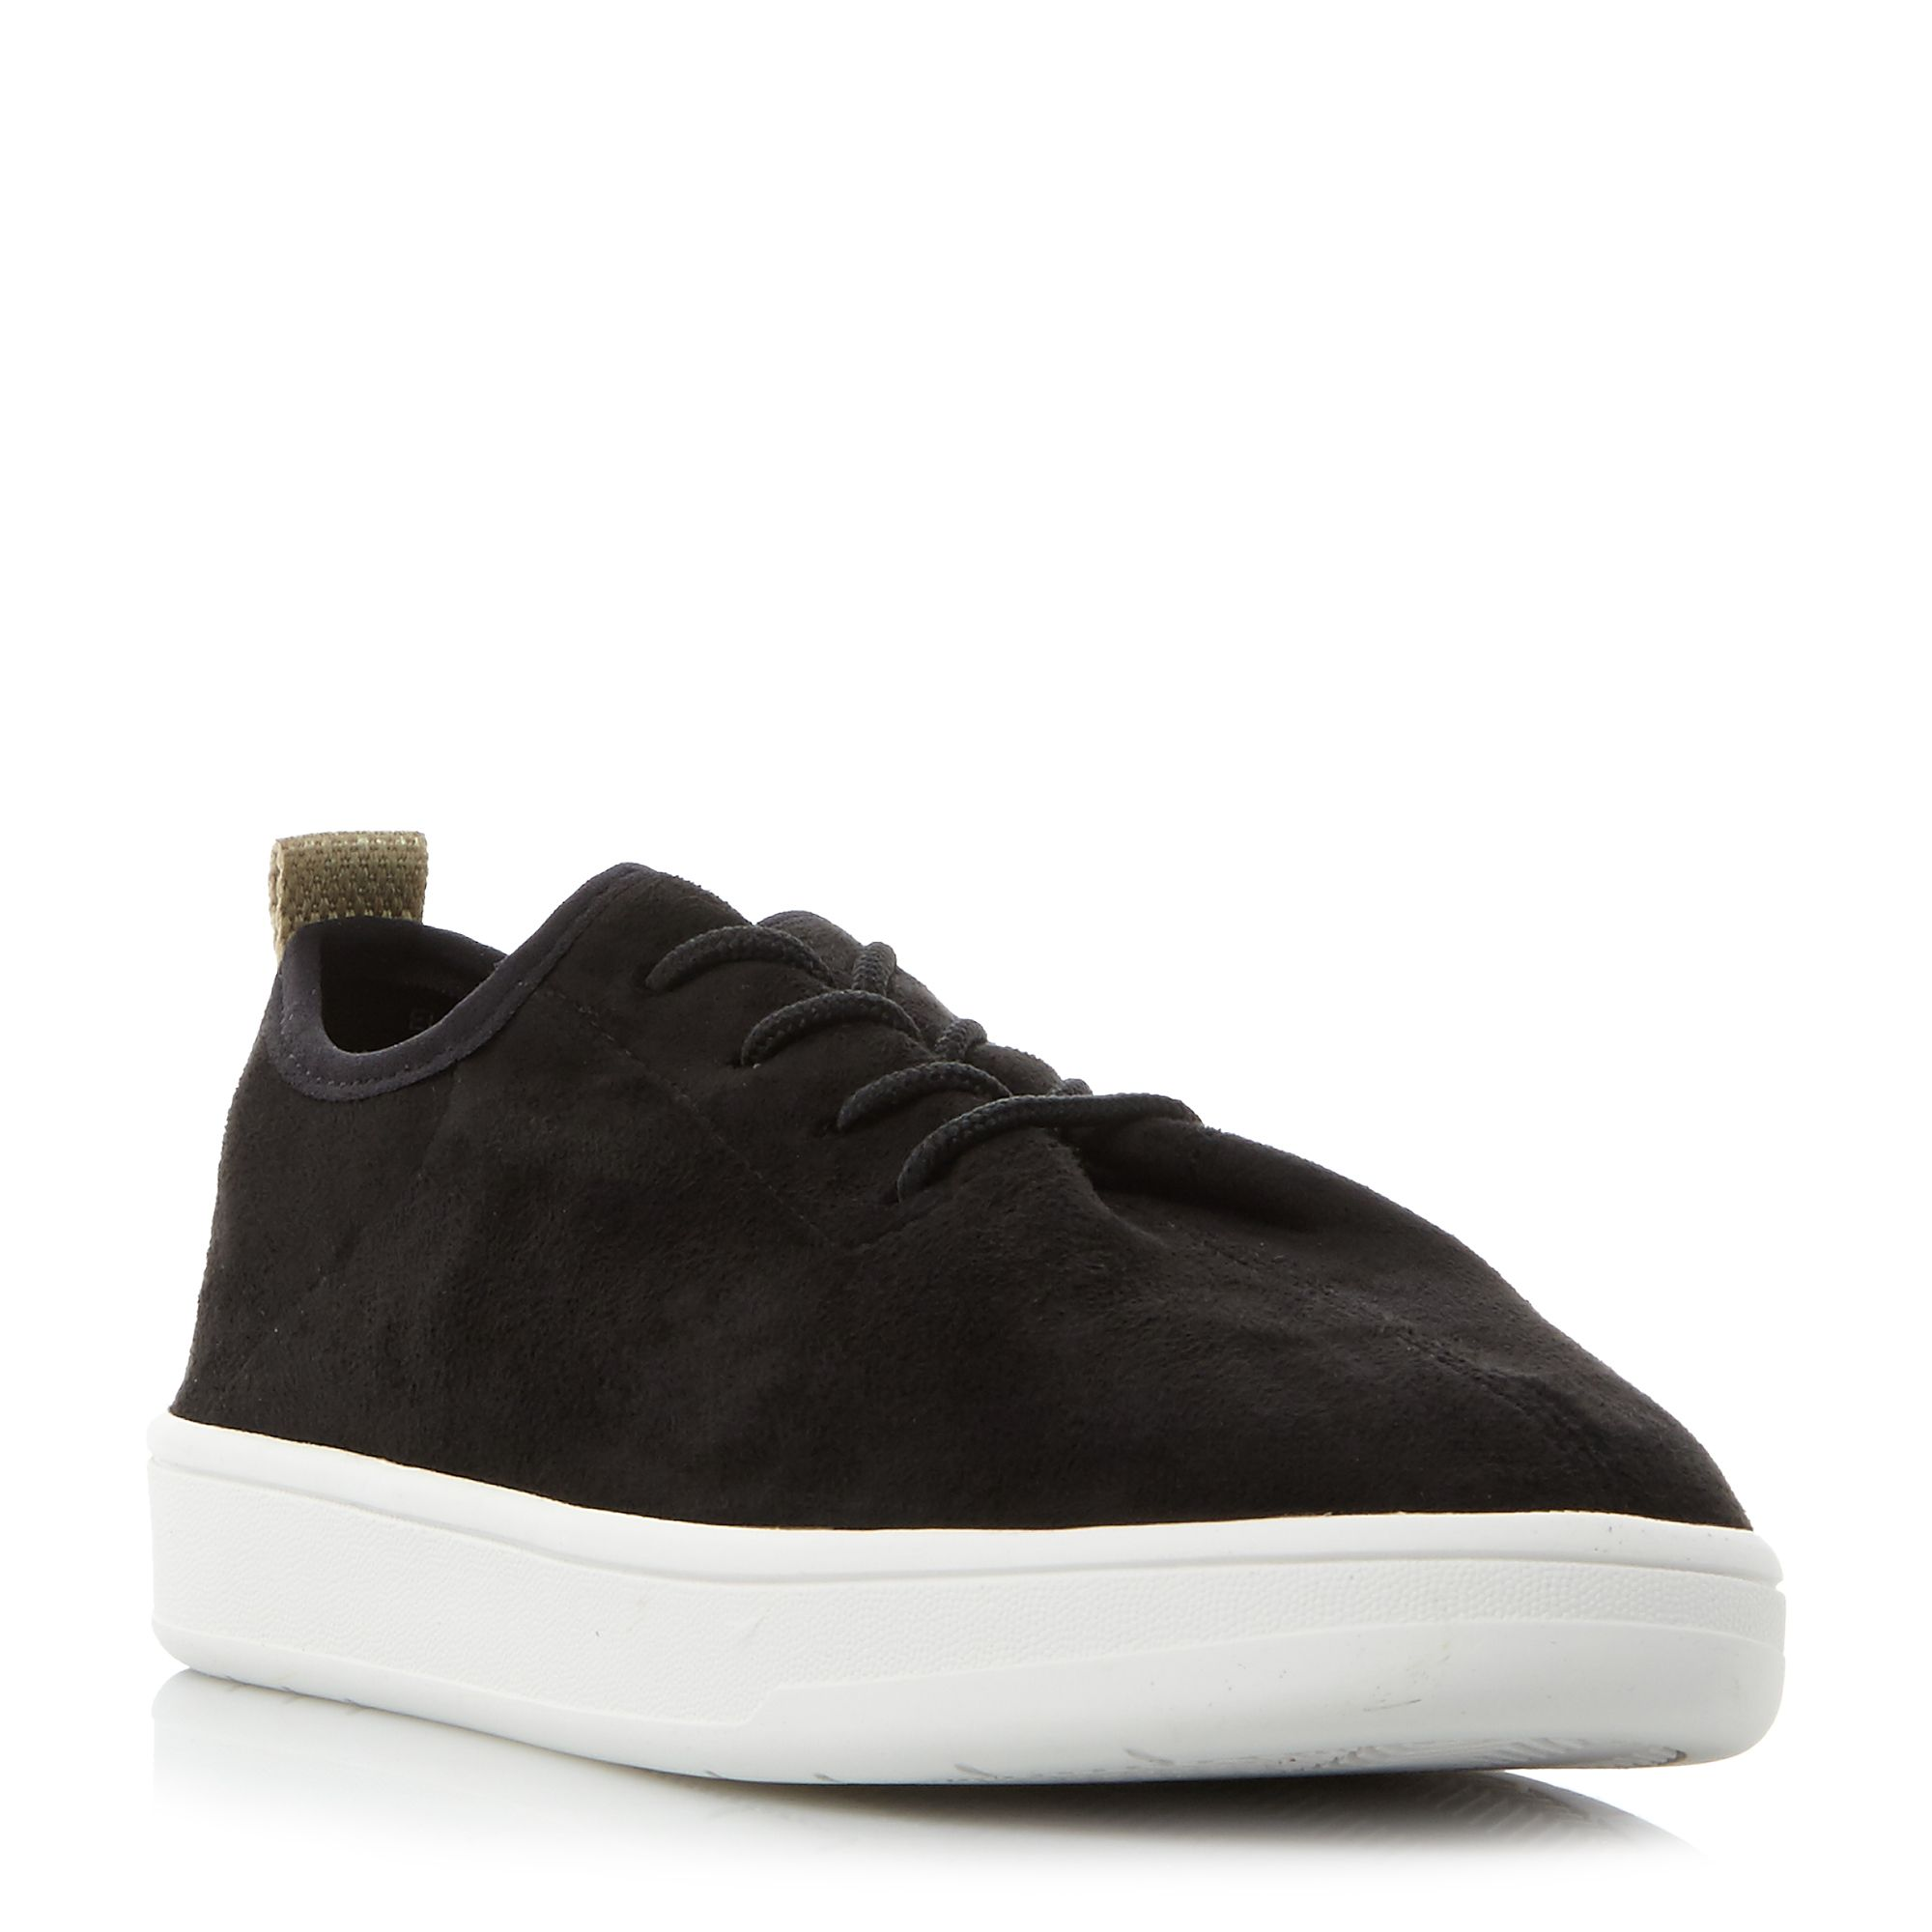 Steve Madden ELEXA SM LACE UP TRAINERS, Black